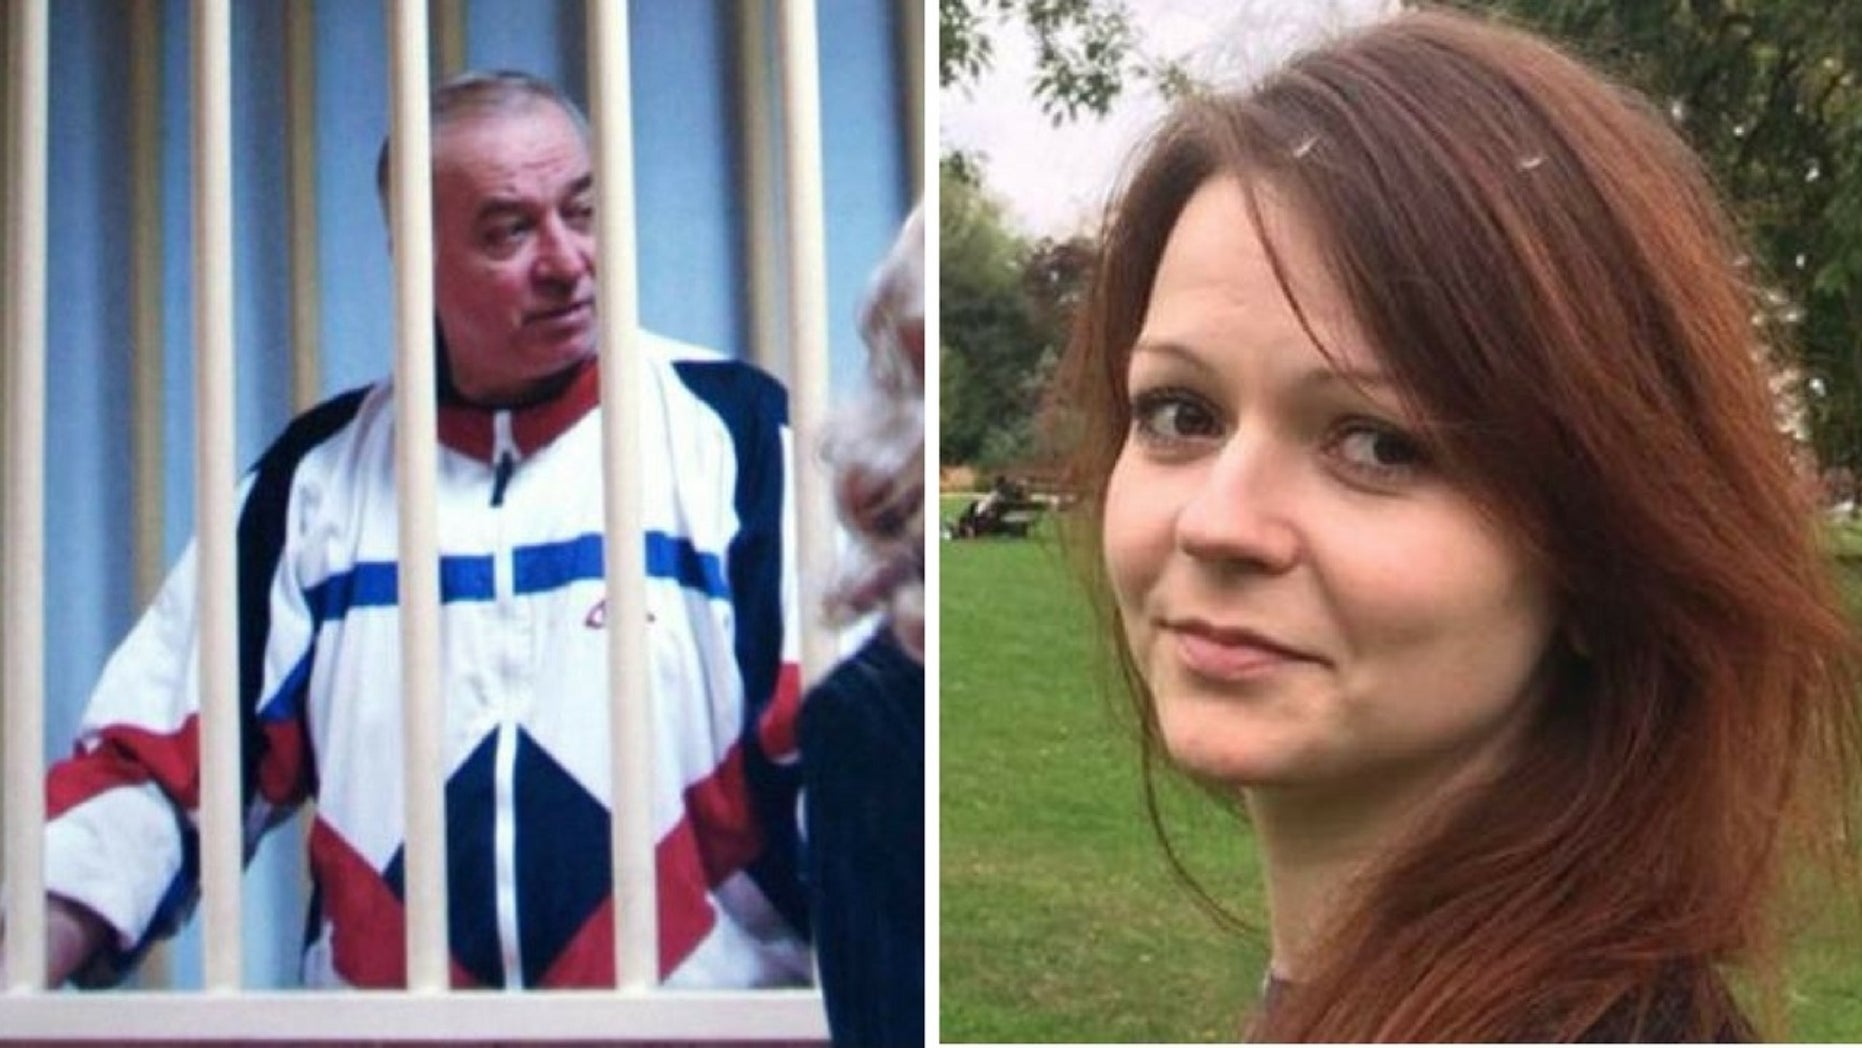 Former Russian spy Sergei Skripal and his daughter, Yulia, remain in critical condition after a mysterious poisoning